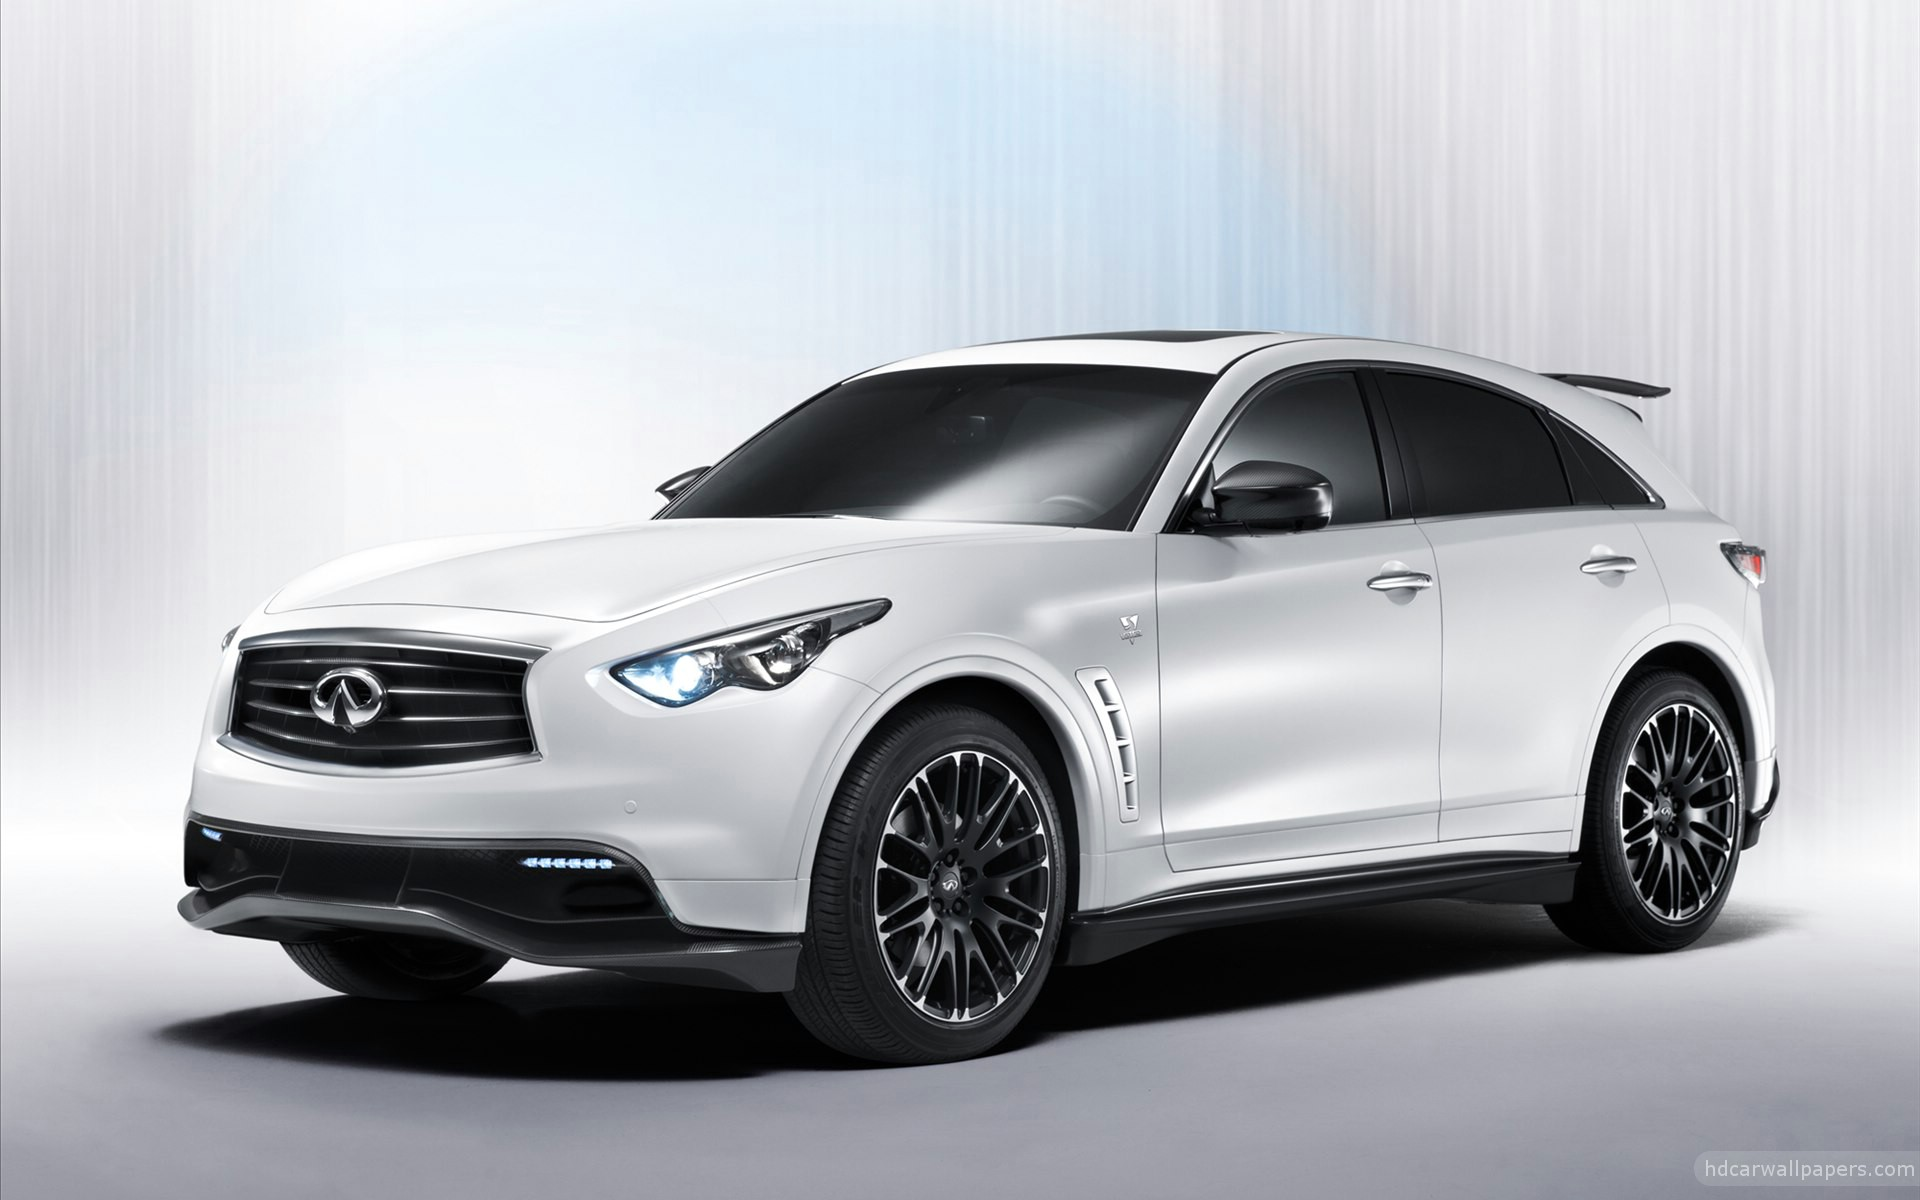 A Special Crossover Premiering At The 2011 Frankfurt Motor Show, The Infiniti  FX Sebastian Vettel Version Is A Racing Inspired Utility.